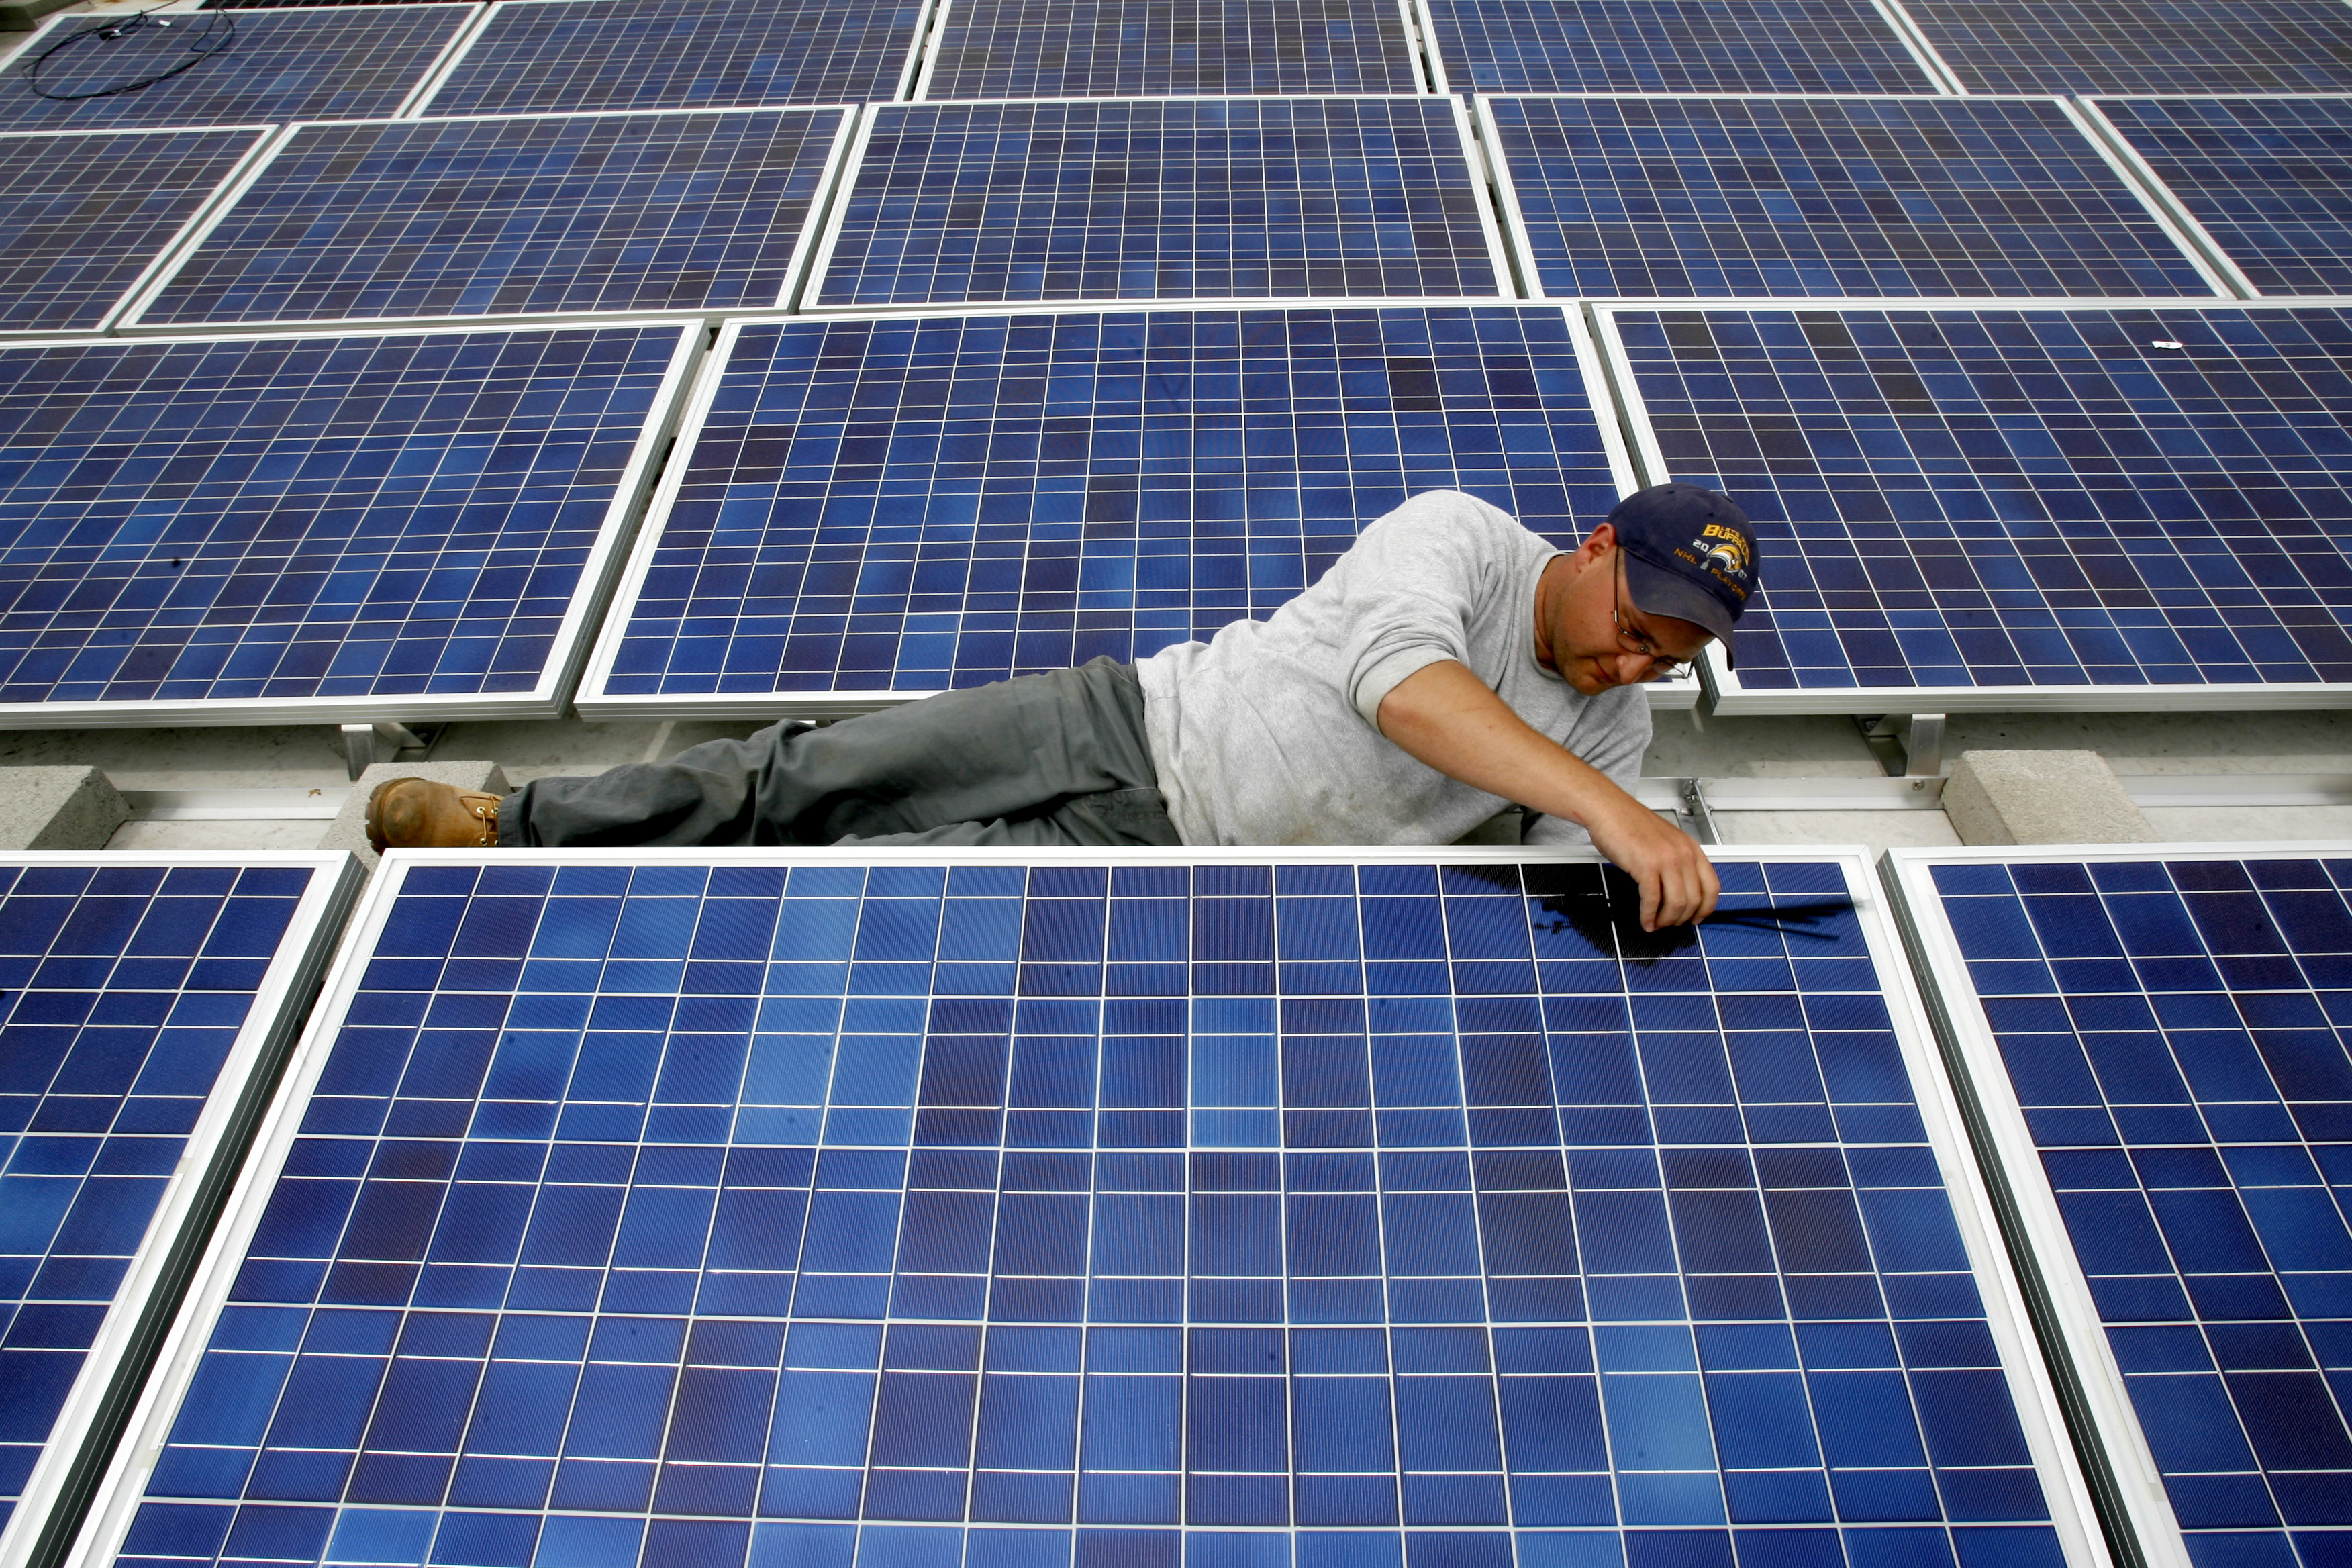 A solar panel technician with Solar Liberty installs solar modules on a roof. (Buffalo News/ Robert Kirkham file photo)